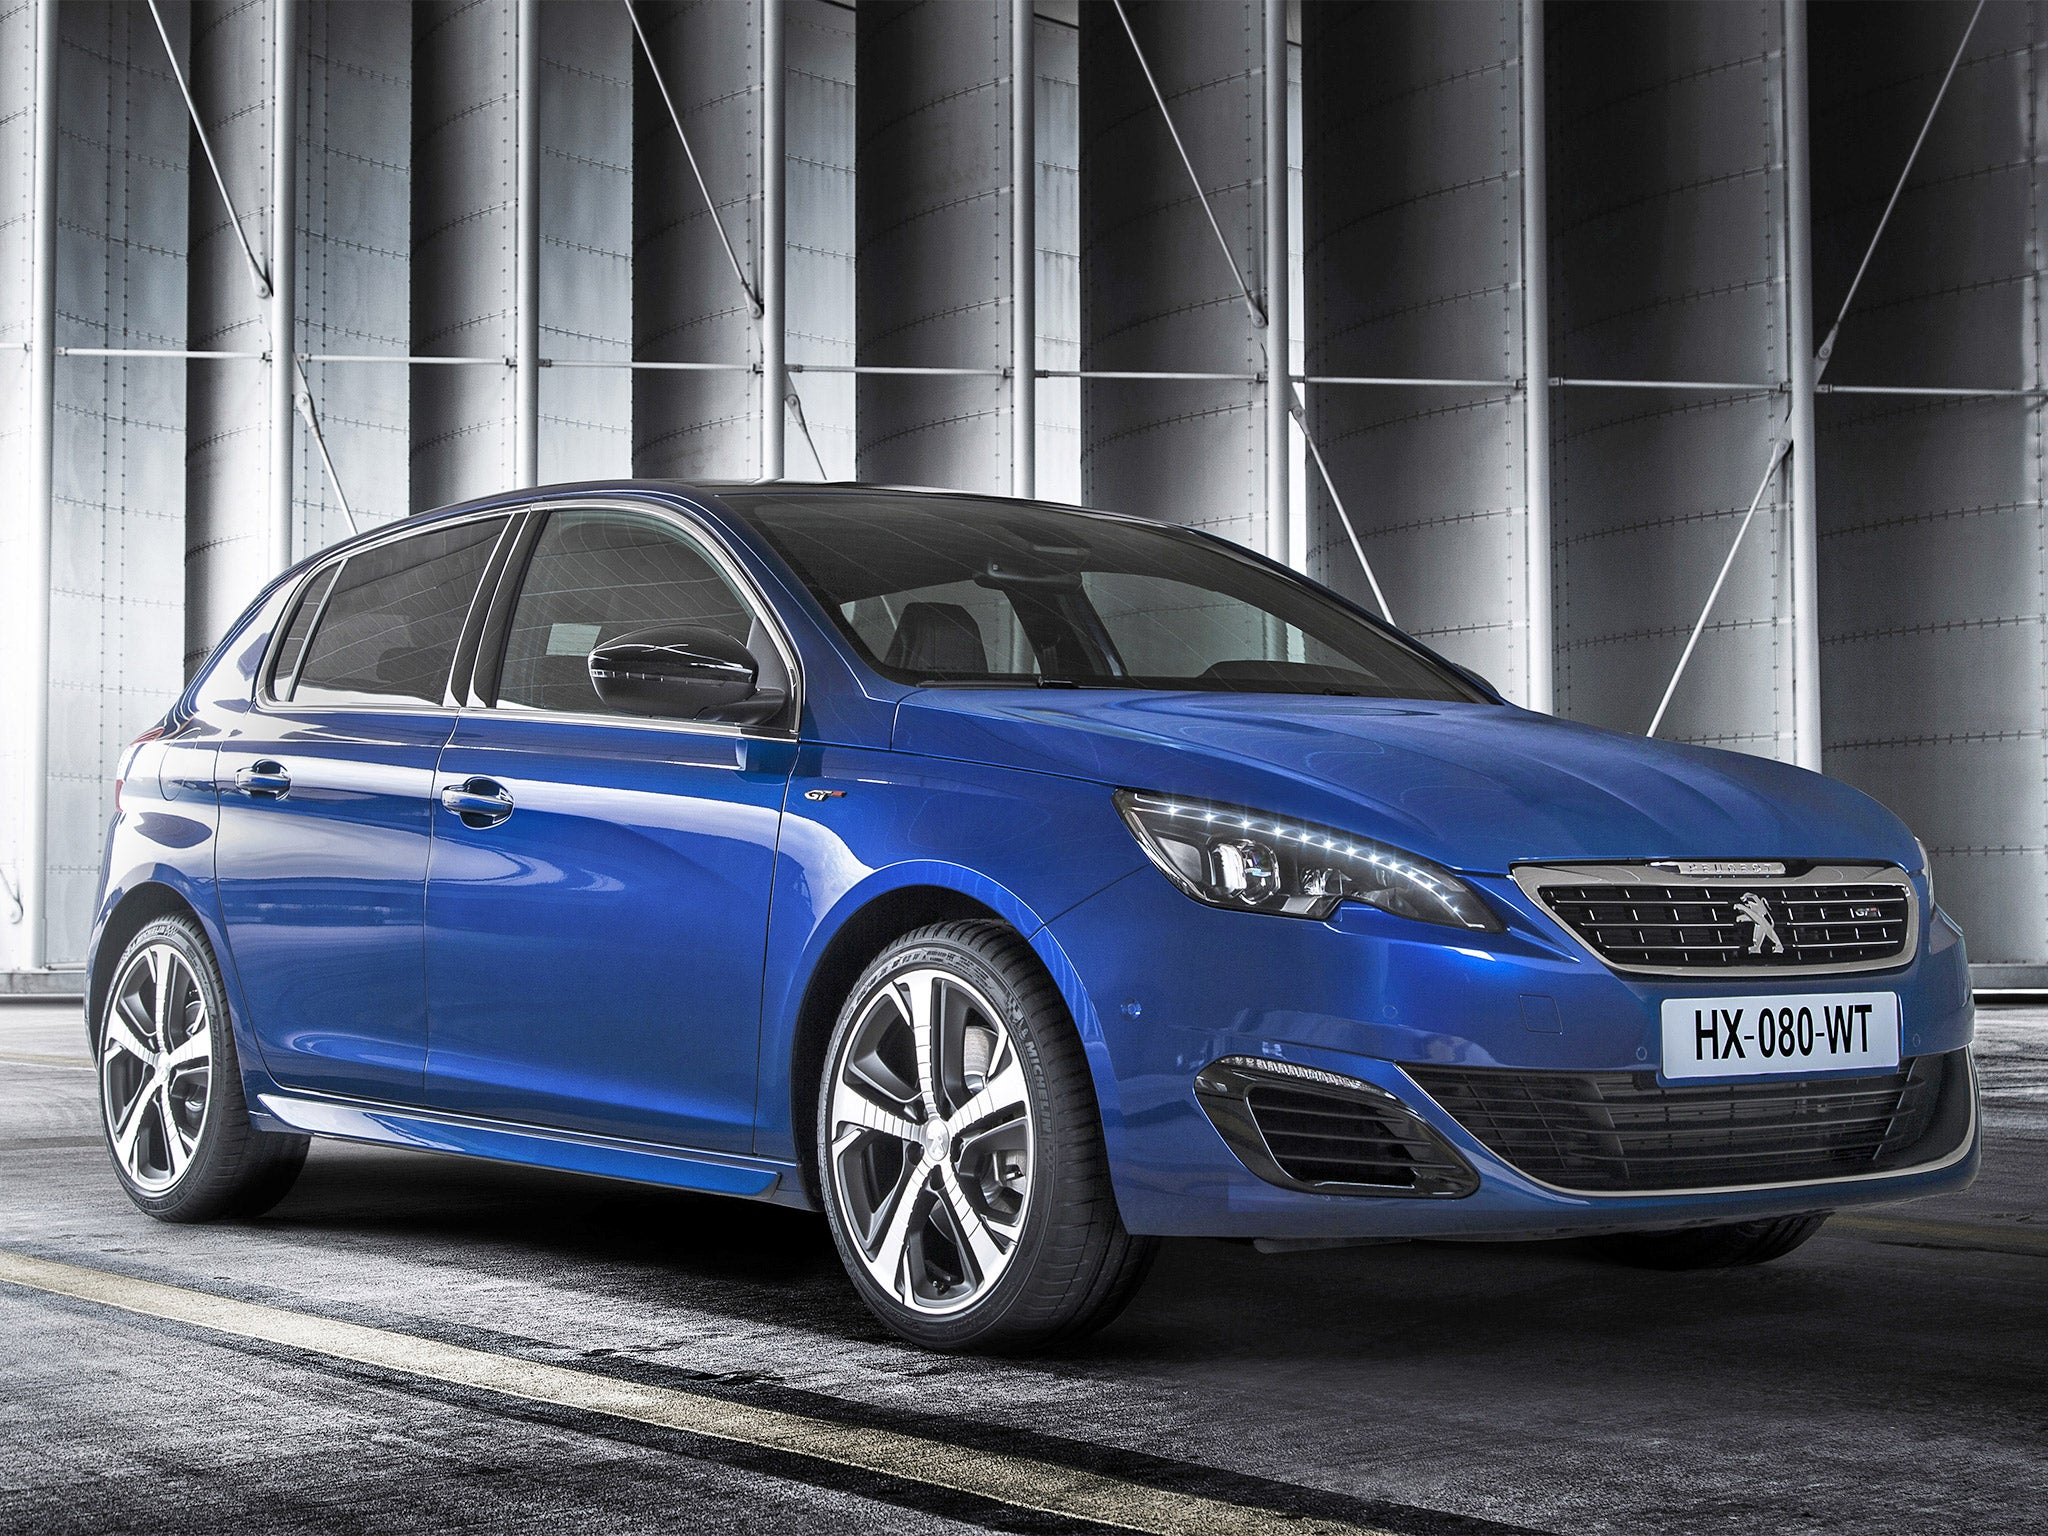 peugeot 308 gt hdi motoring review almost perfect but this sporty car comes at a hefty price. Black Bedroom Furniture Sets. Home Design Ideas